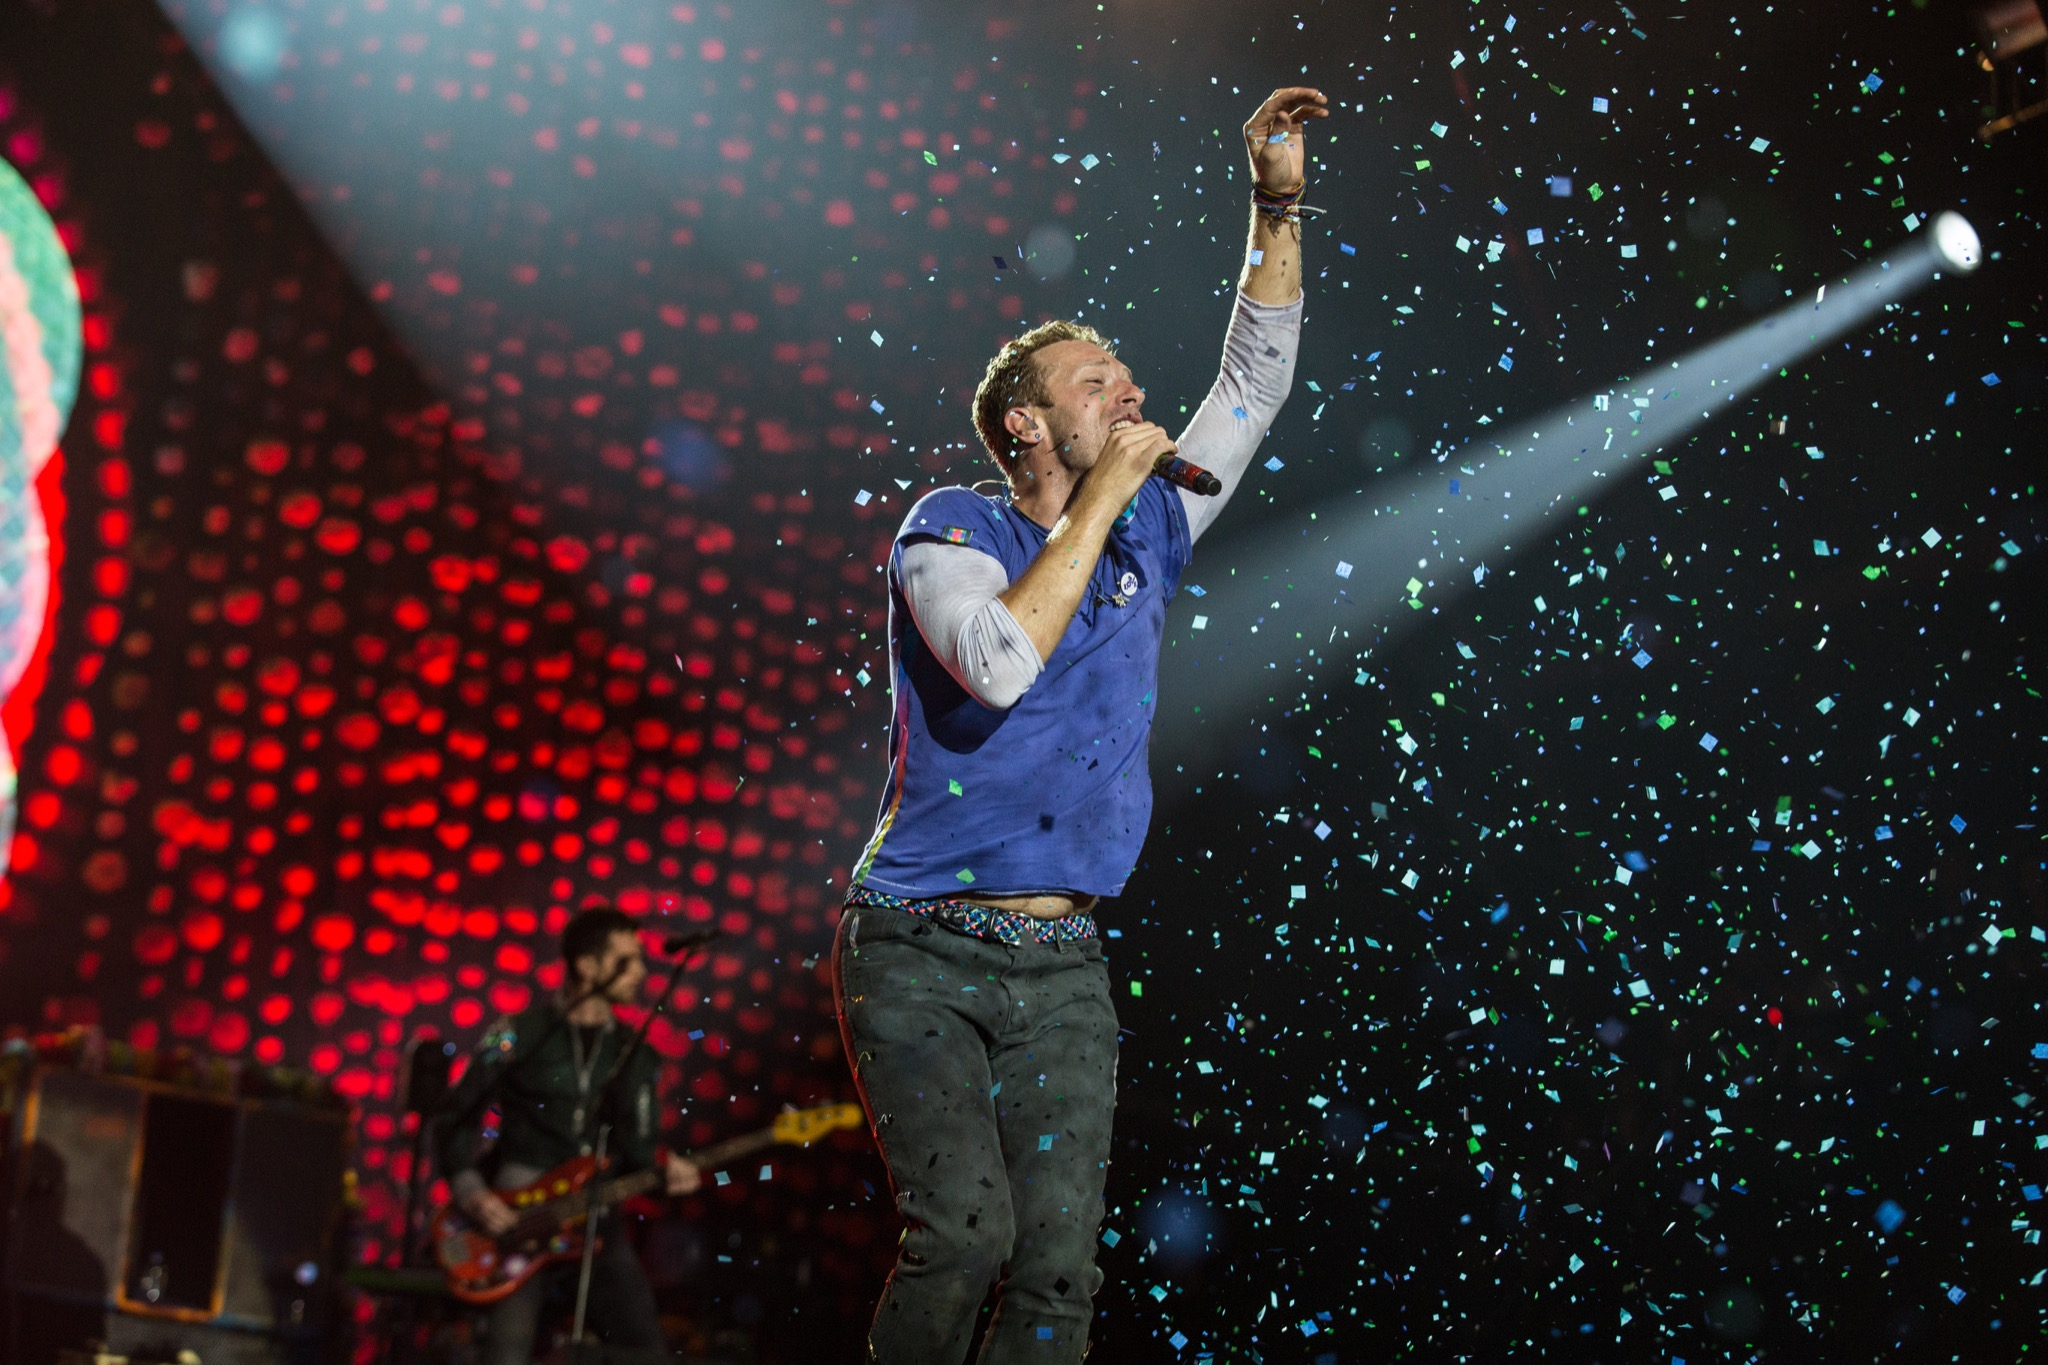 Coldplay are releasing a new EP next year